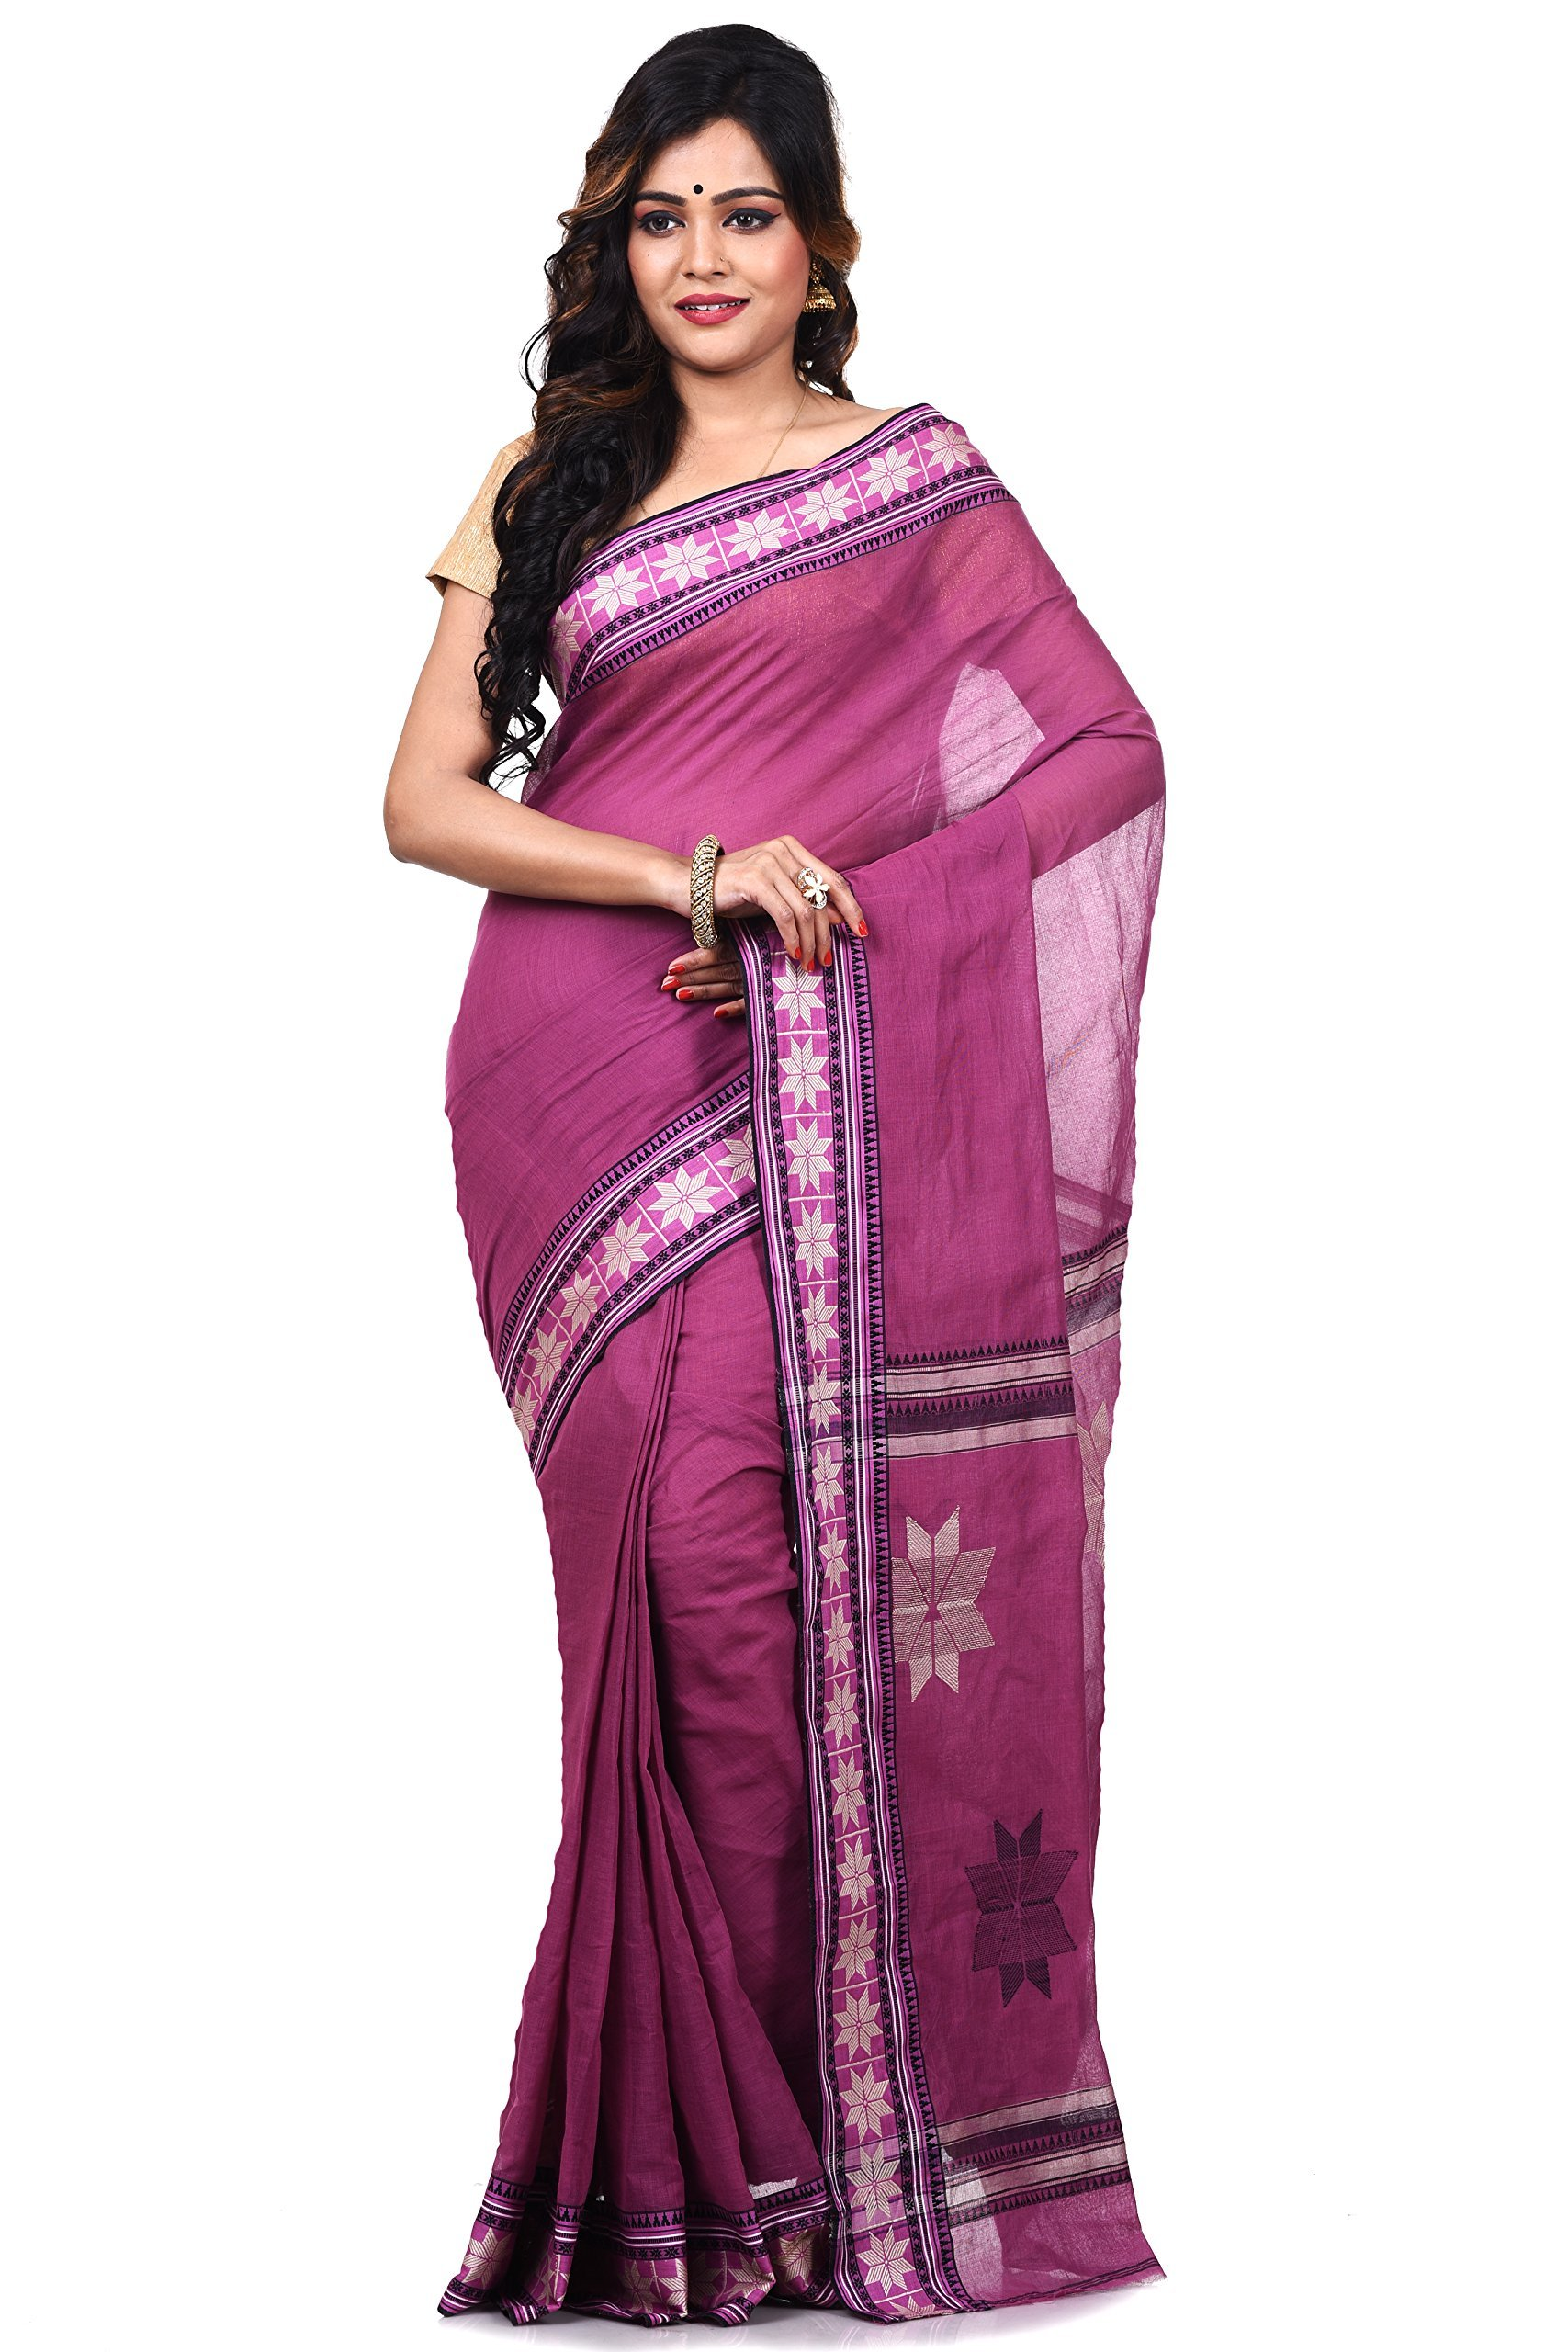 Bengal Handloom Saree Women's Pure Cotton Tangail Free Size Maroon